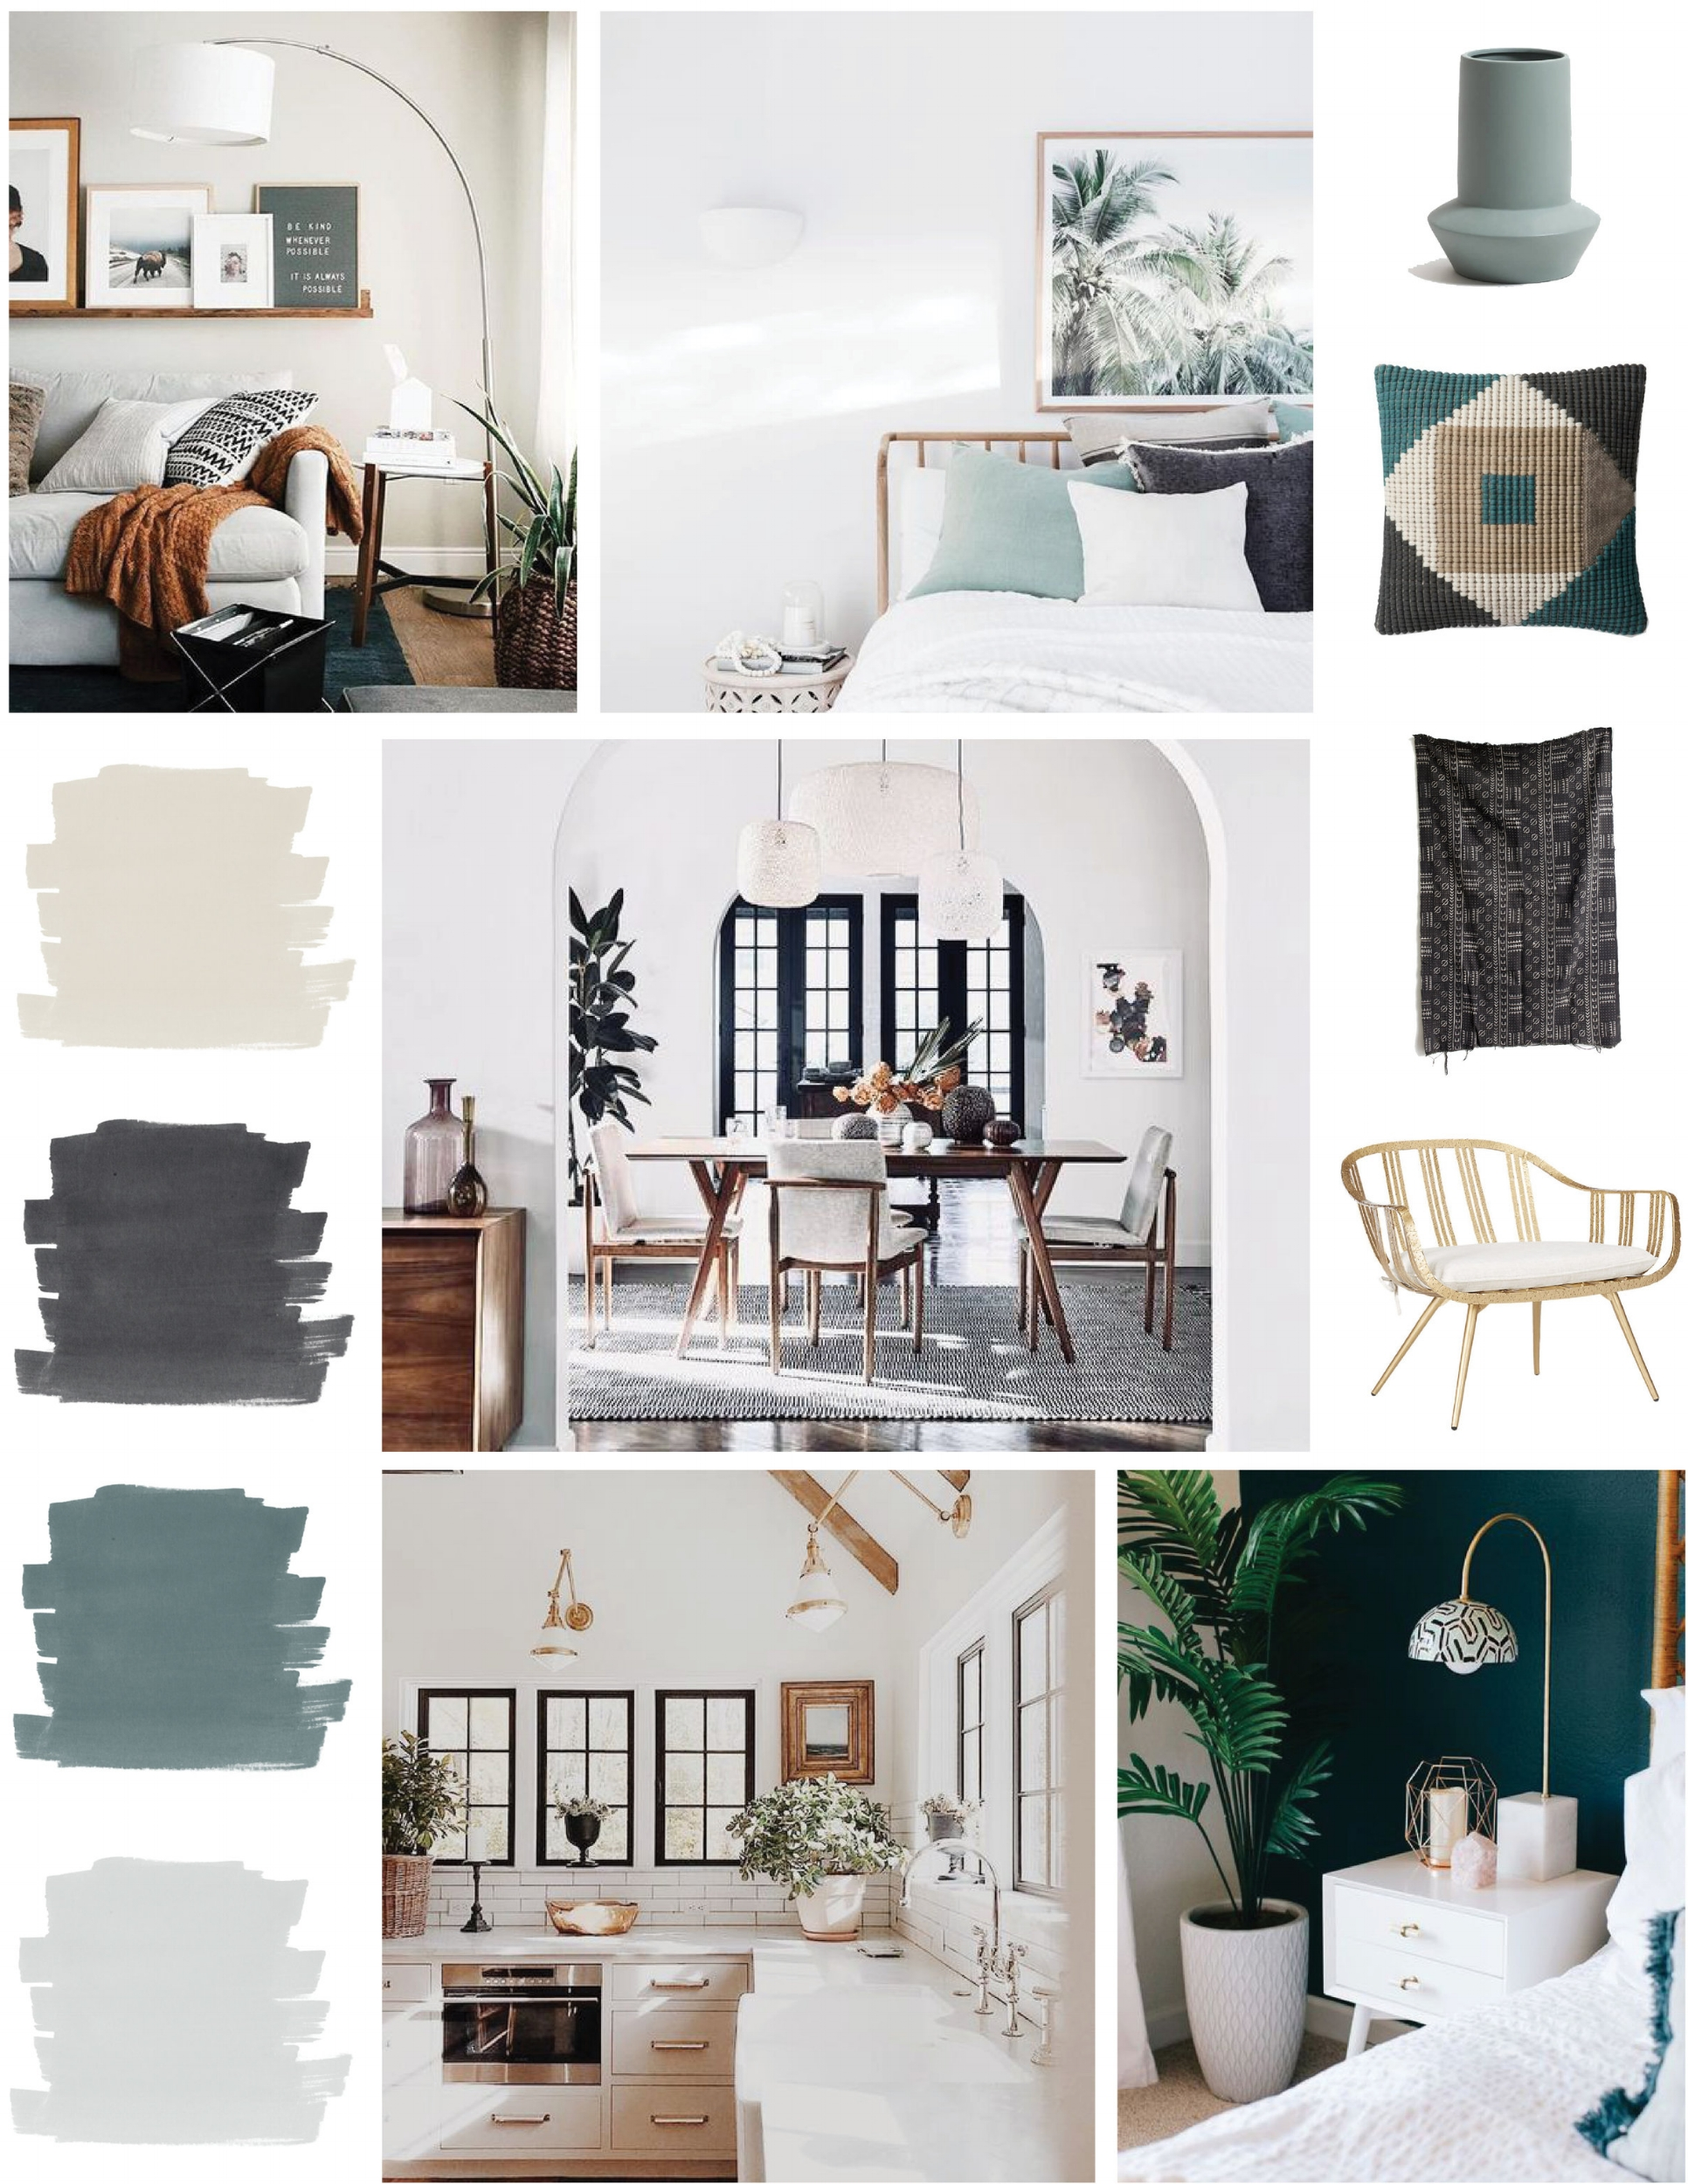 SOURCES:   Chair   |   Mudcloth   |   Cushion   |   Vase     |     Dining Room     |     Bottom Bedroom Photo   |   Inspiration Images: Unknown Sources